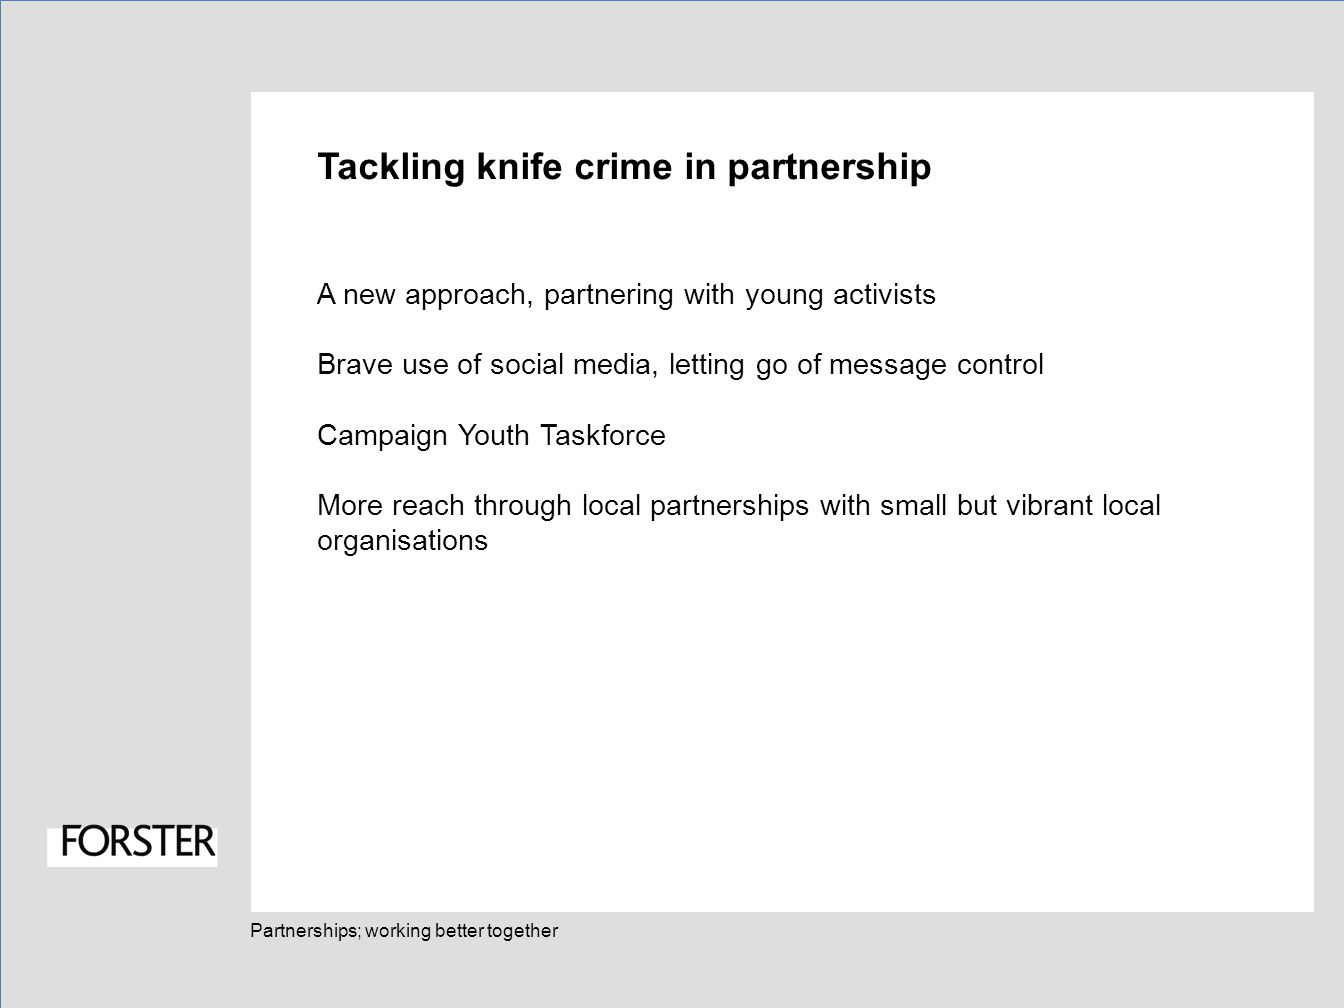 Partnerships; working better together Tackling knife crime in partnership A new approach, partnering with young activists Brave use of social media, letting go of message control Campaign Youth Taskforce More reach through local partnerships with small but vibrant local organisations